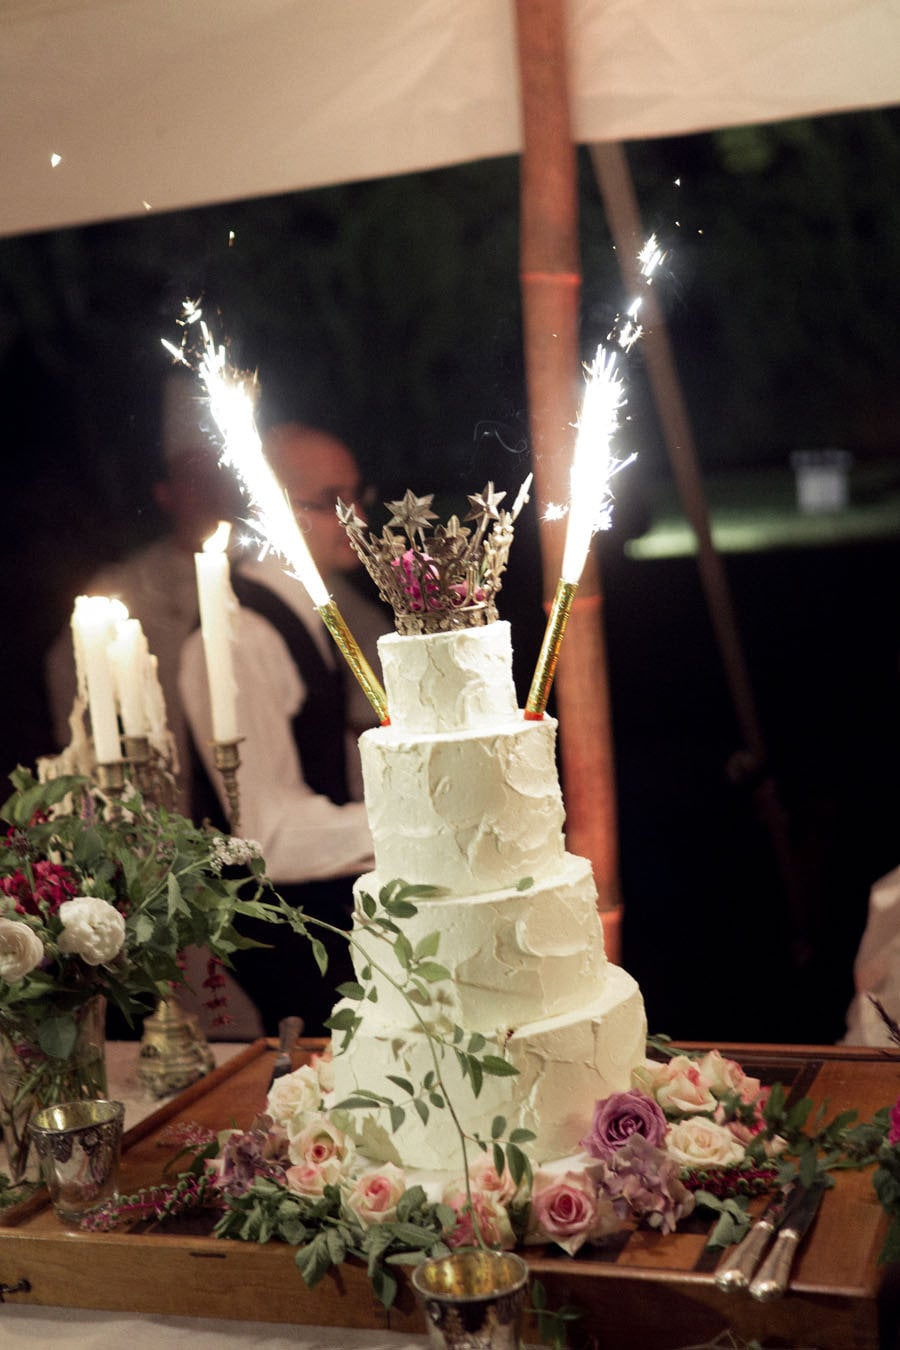 There were even fireworks in the cake.